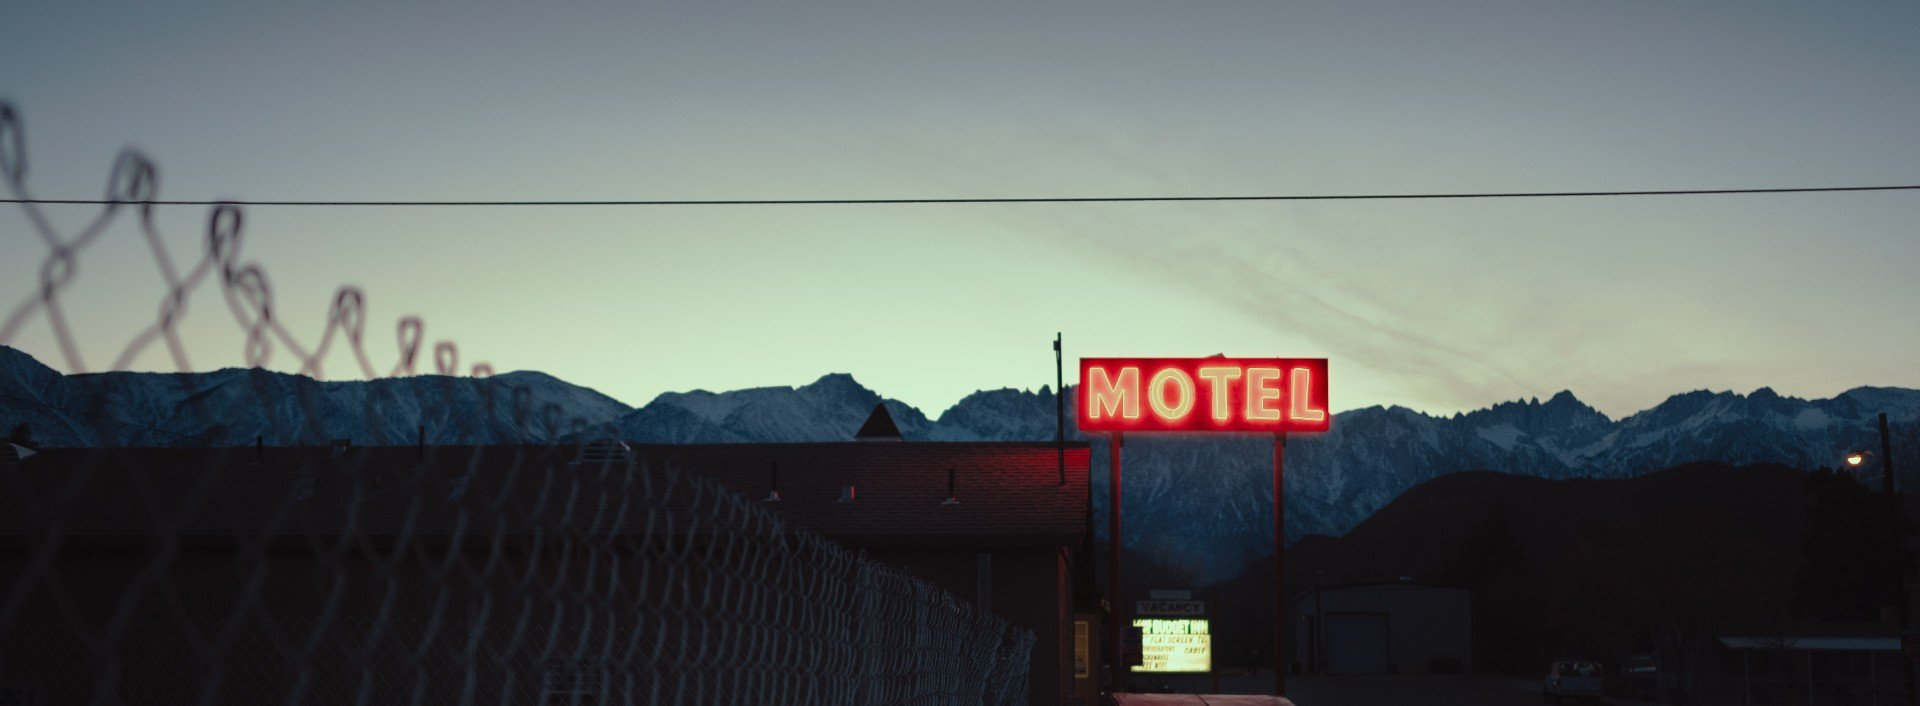 A picture from a distance of sign that says Motel, one many blended words in English